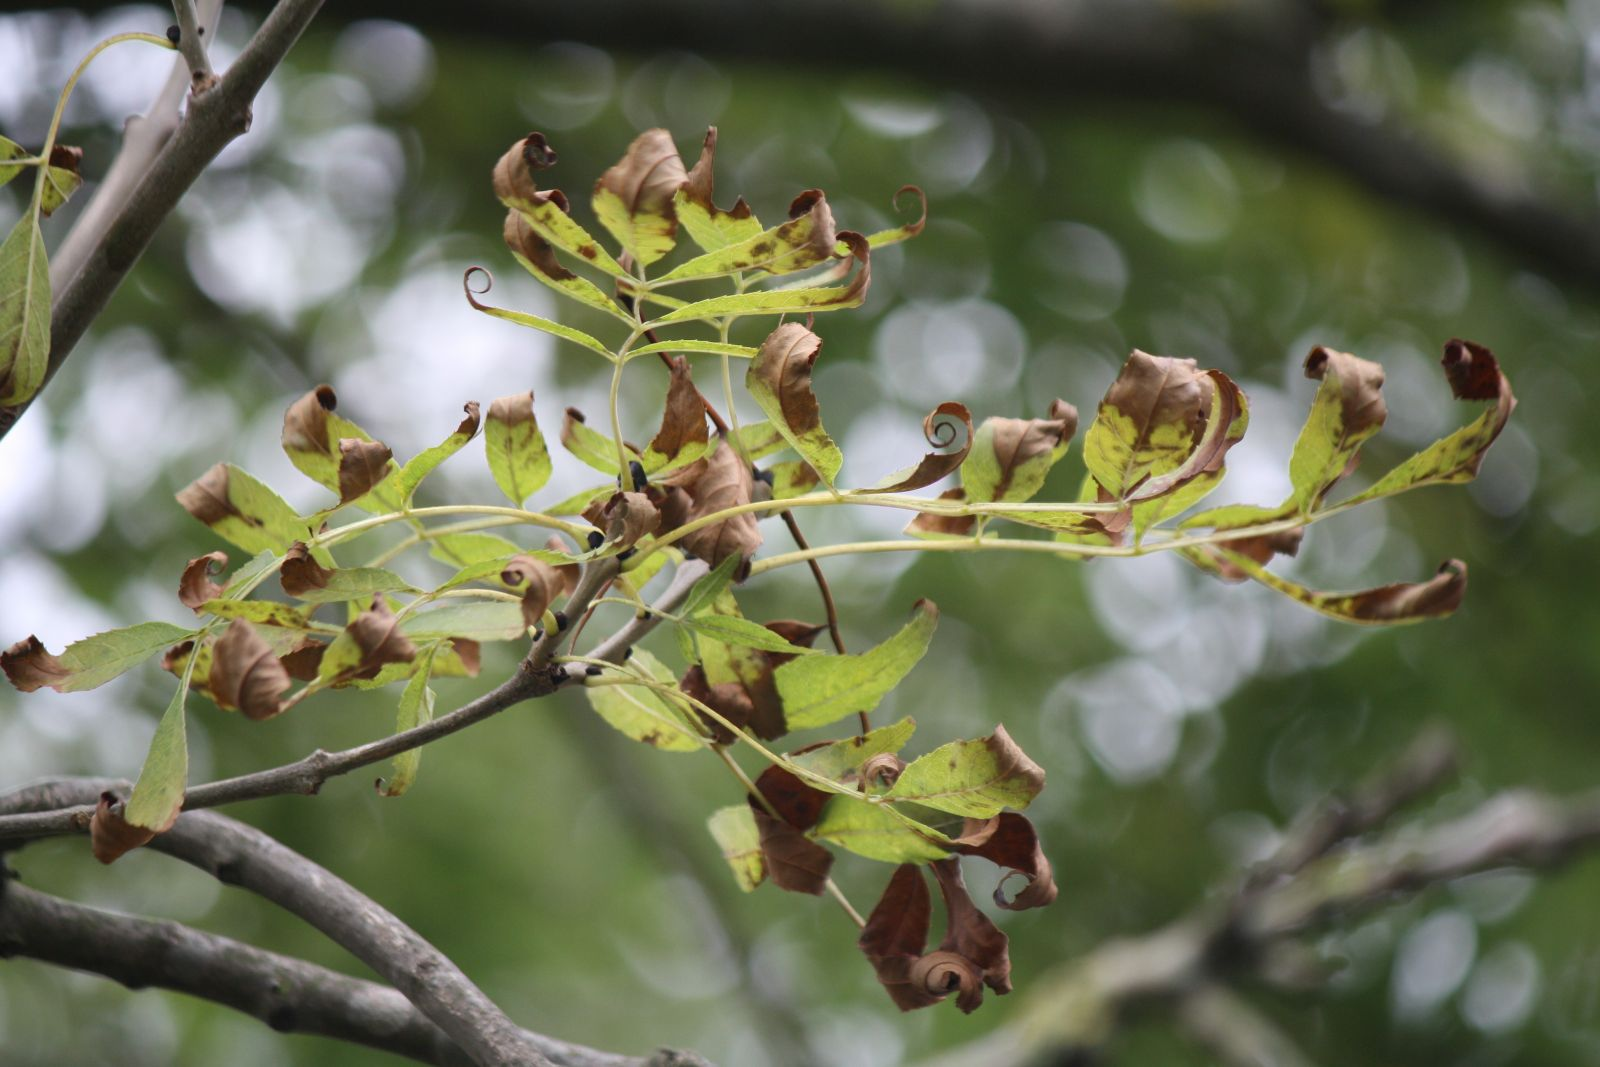 New hope for woodland owners battling devestating tree disease 'ash dieback'